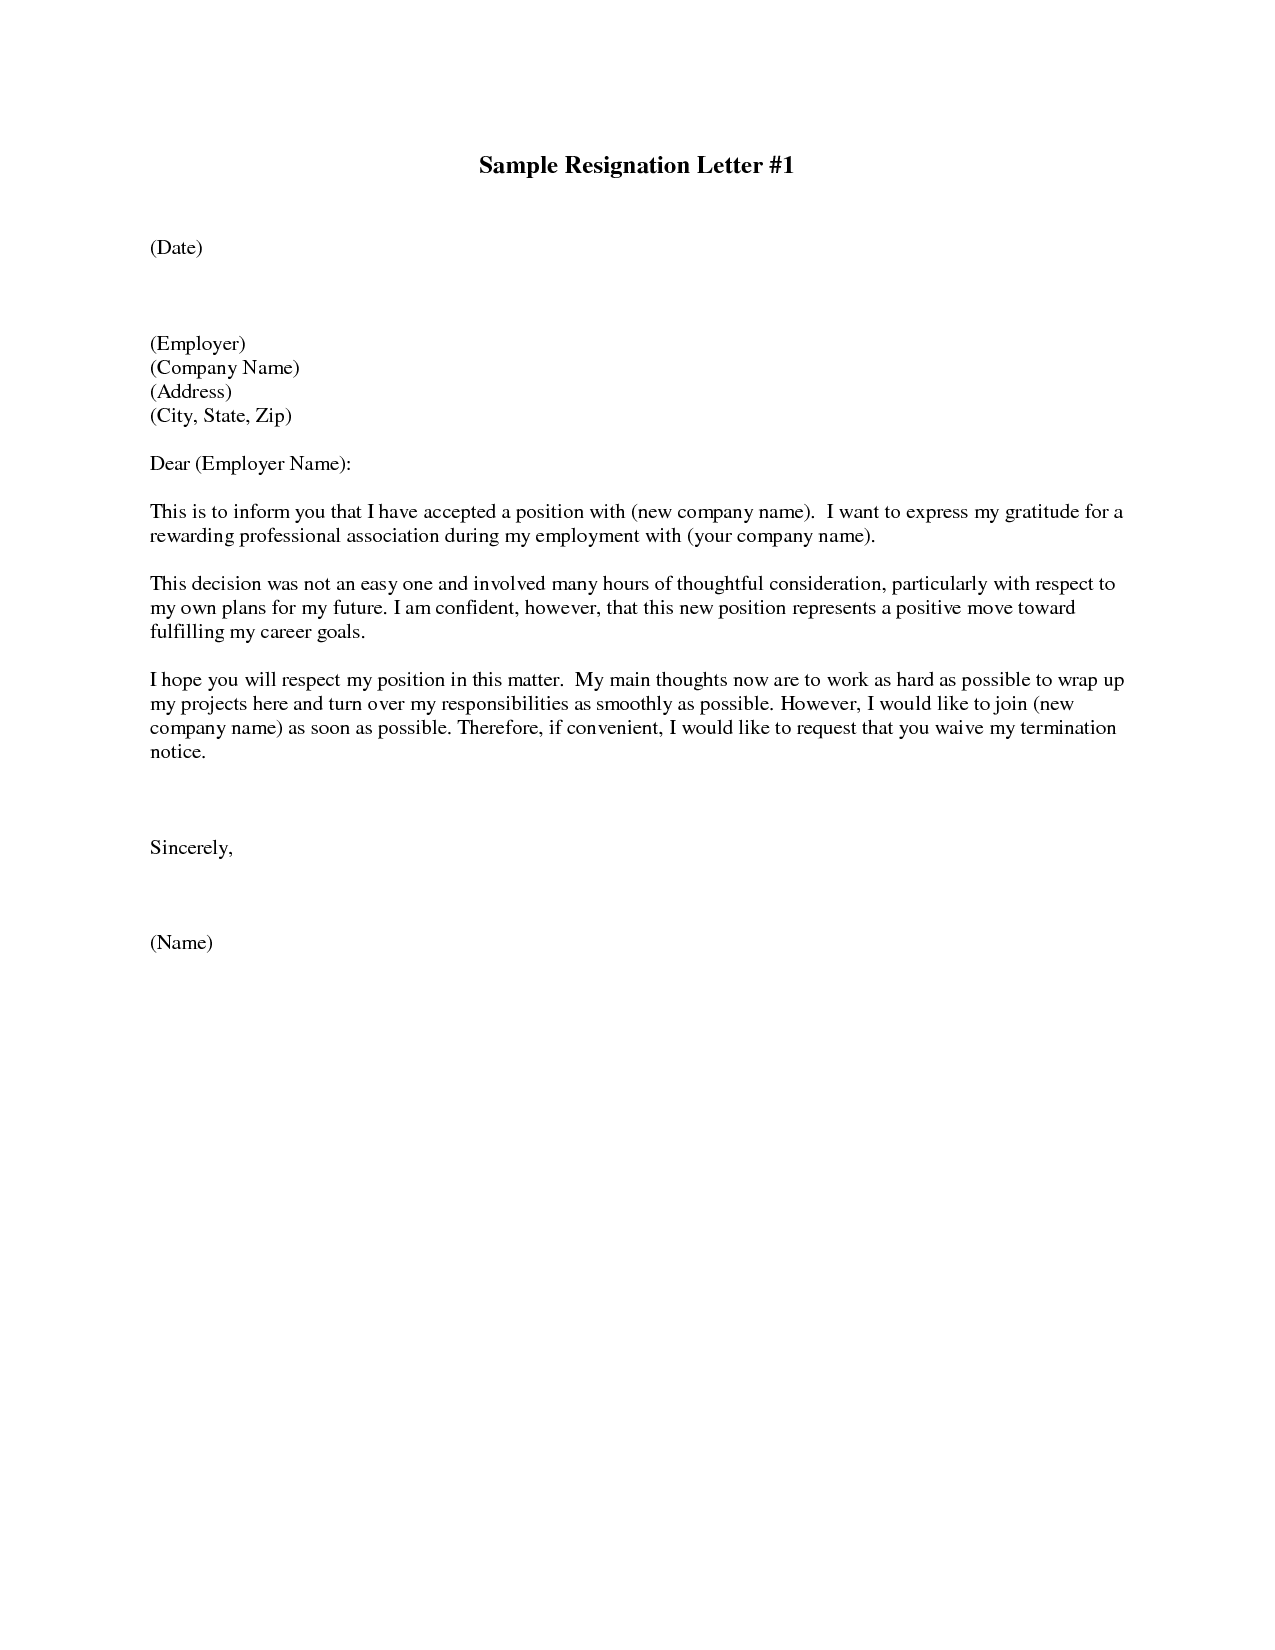 Printable Sample Letter of Resignation Form  Laywers Template Forms Online  Letter sample